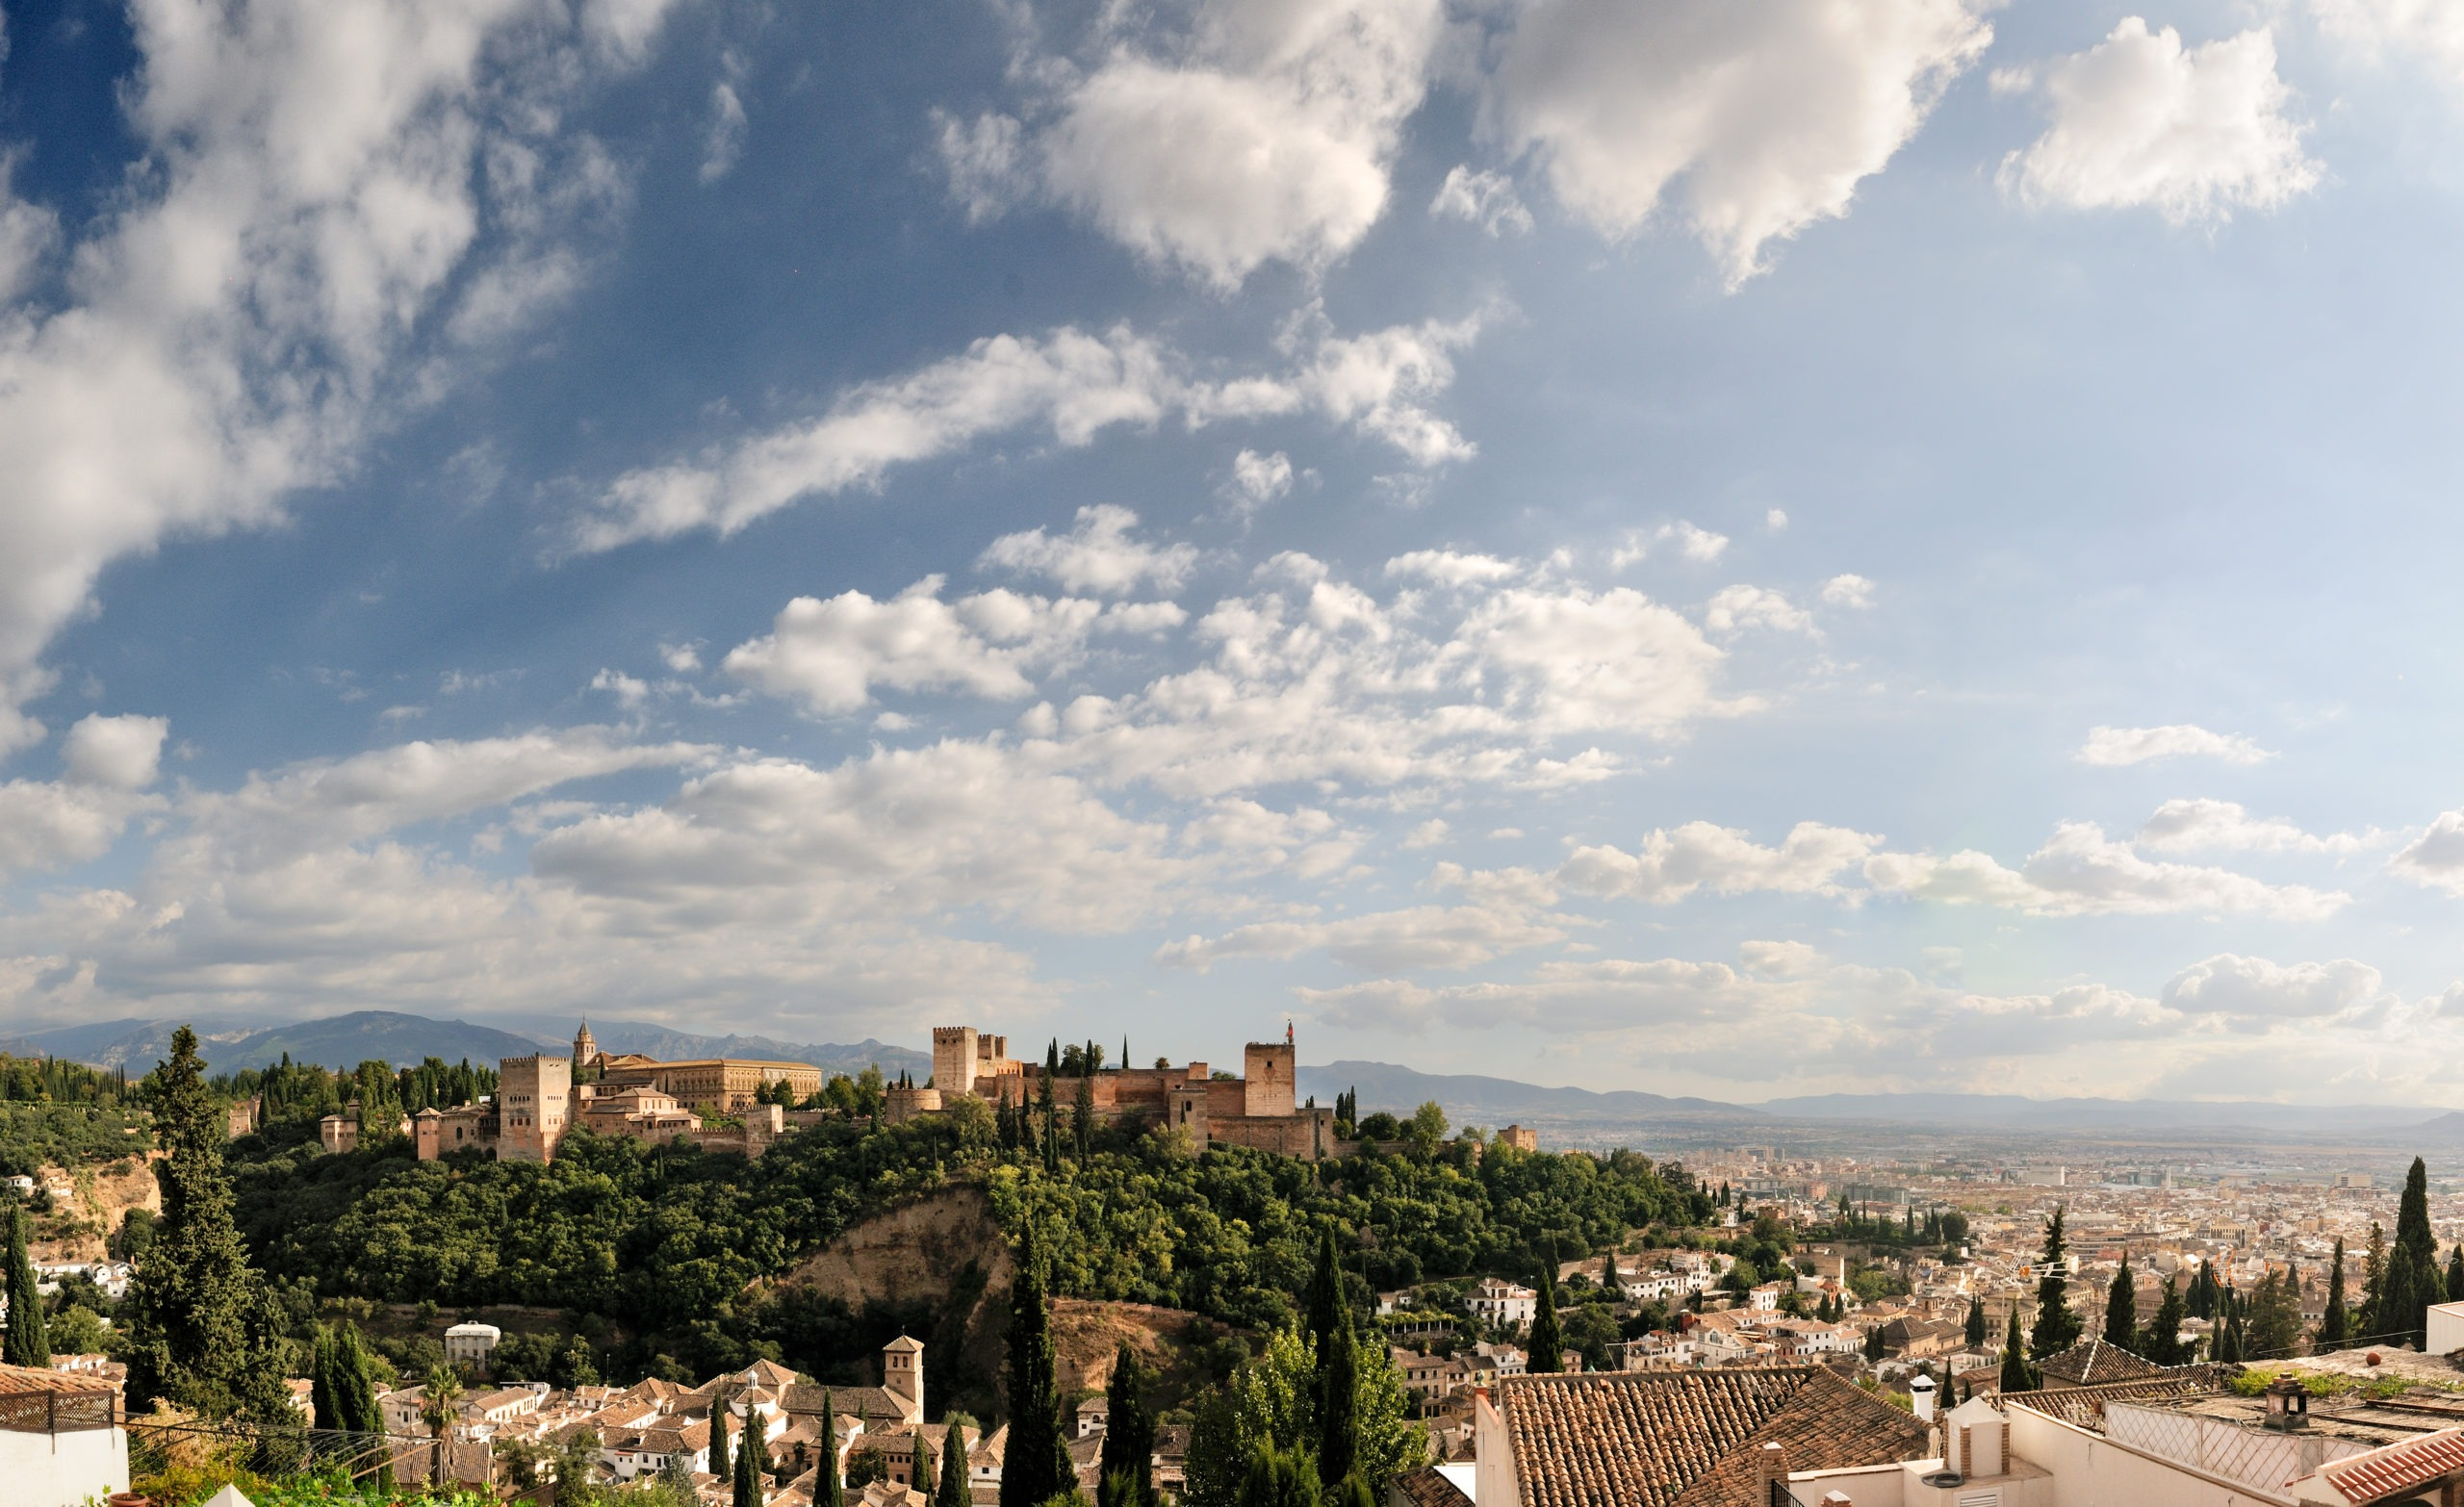 alhambra-and-granada-with-blue-sky